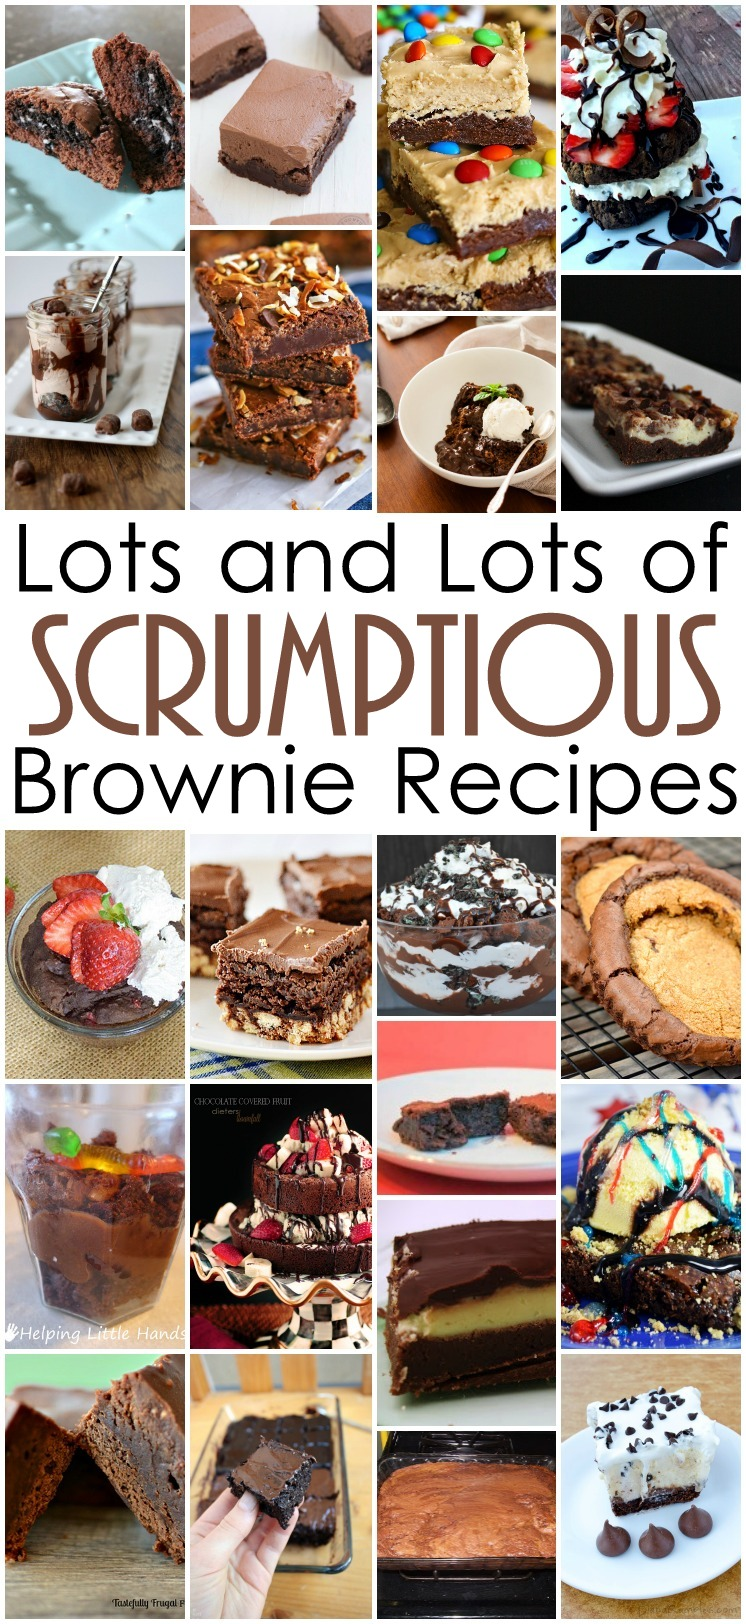 Tons of easy and delicious brownie dessert recipes. All these brownies look so good.